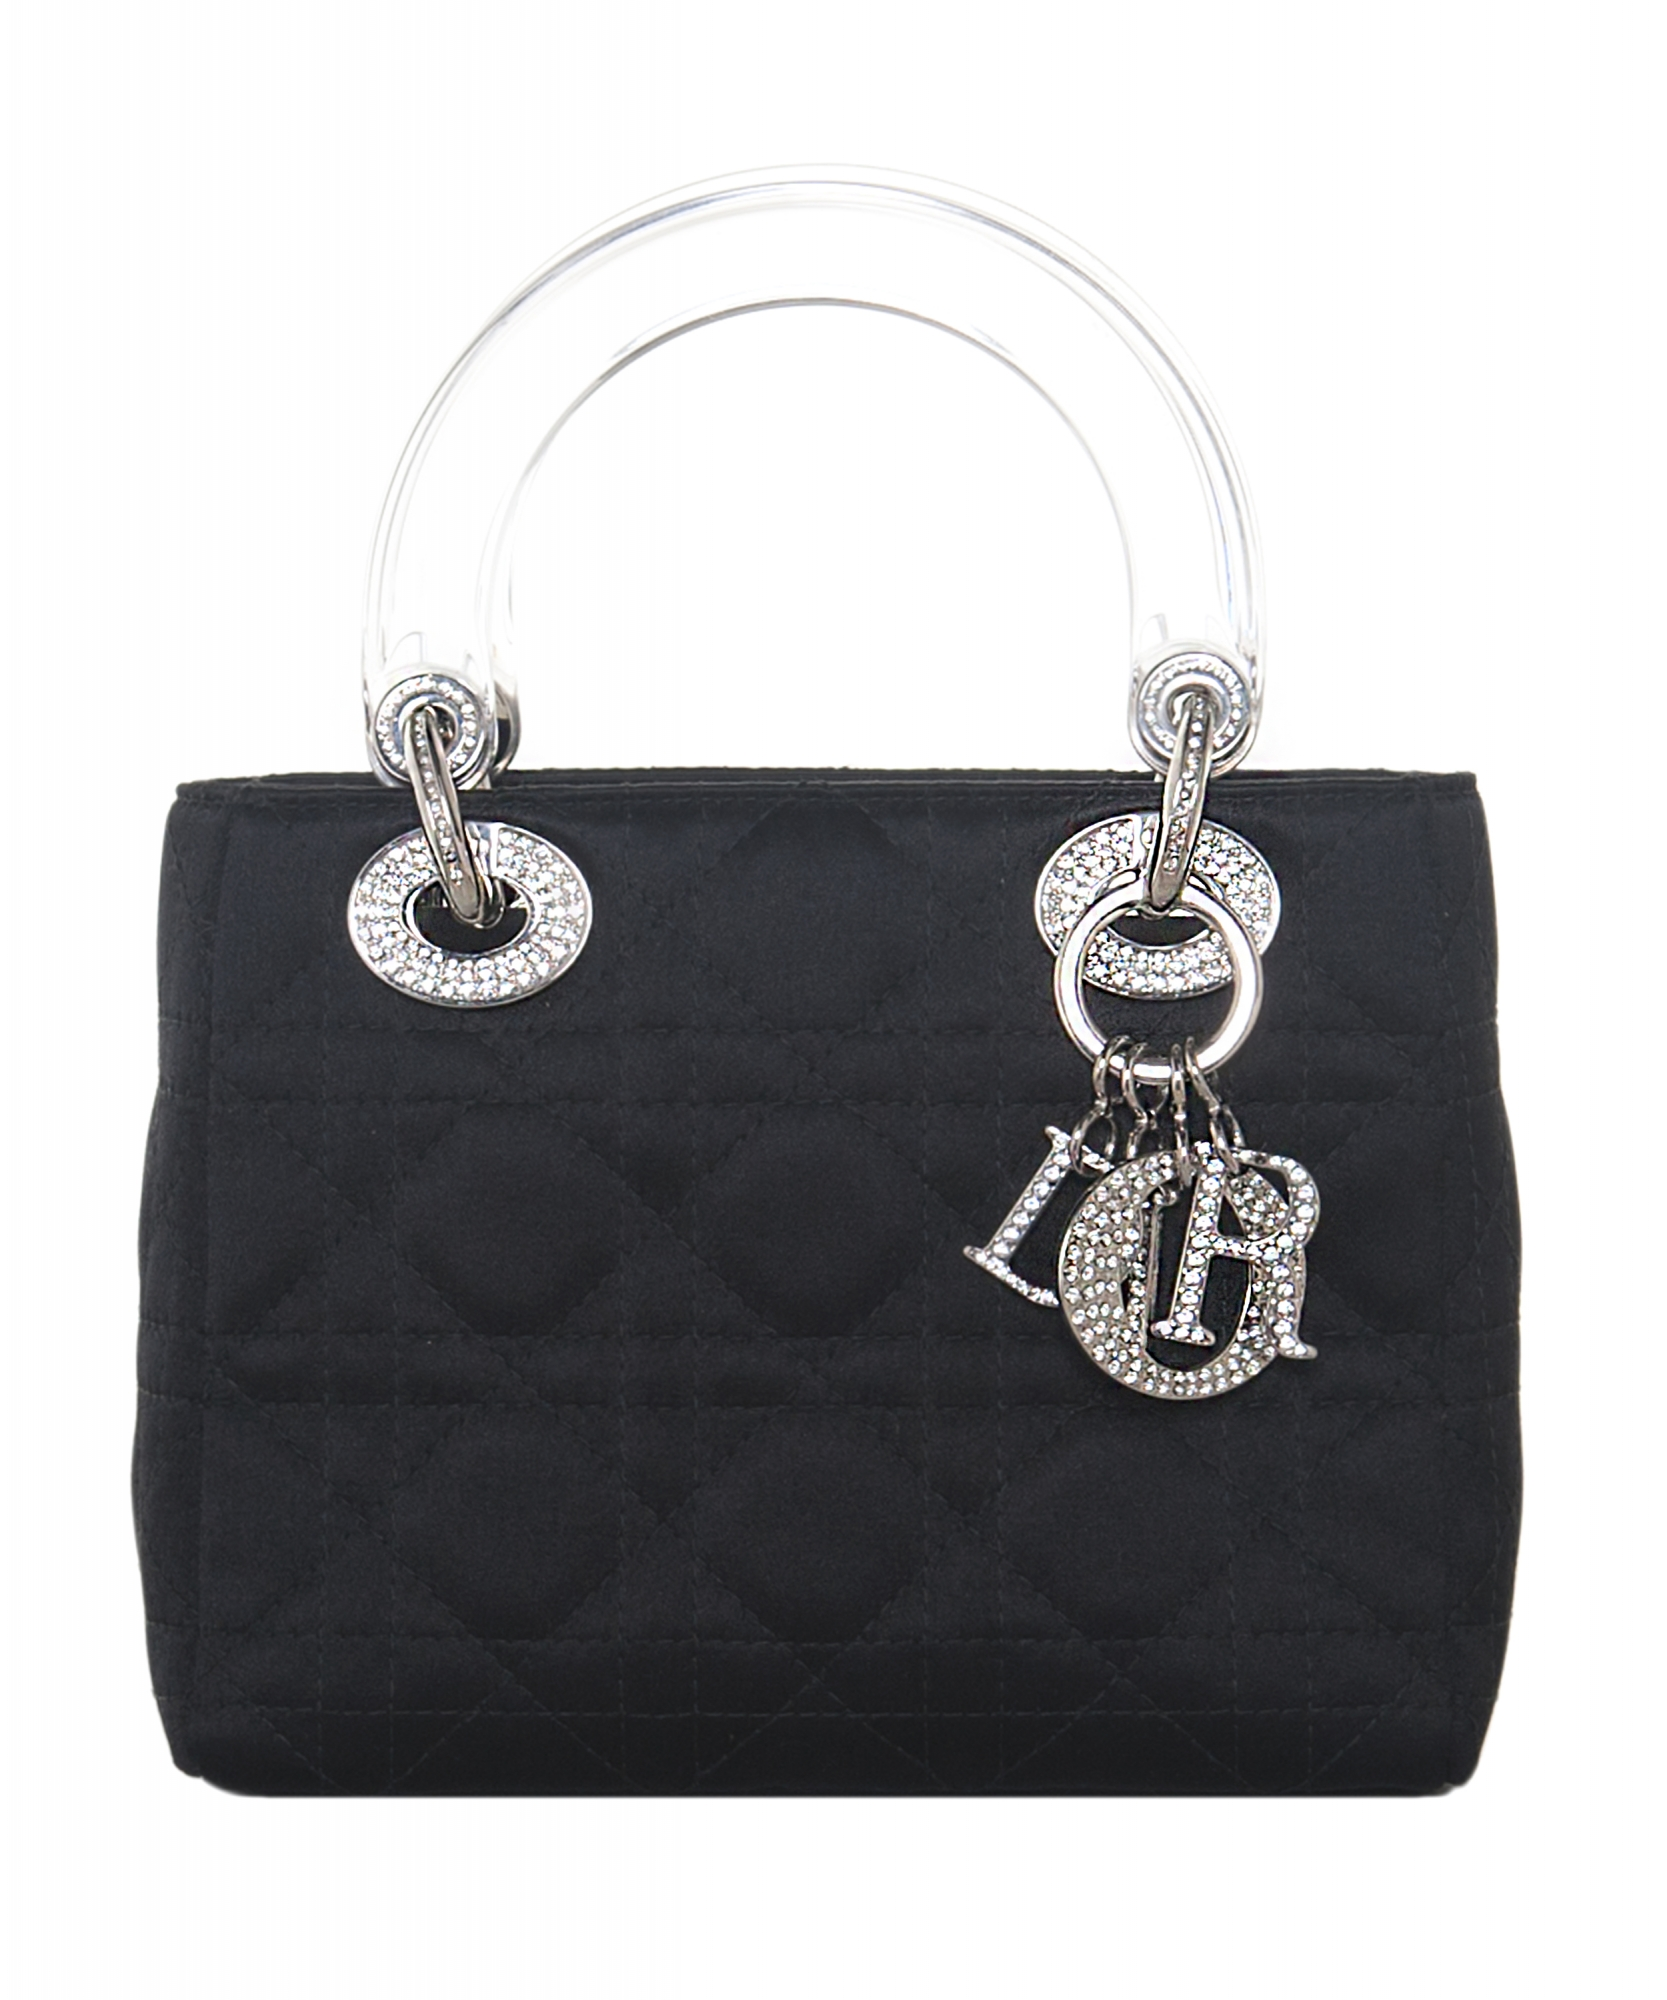 Christian Dior Mini Satin  Lady Dior  Bag  596e33beb7906